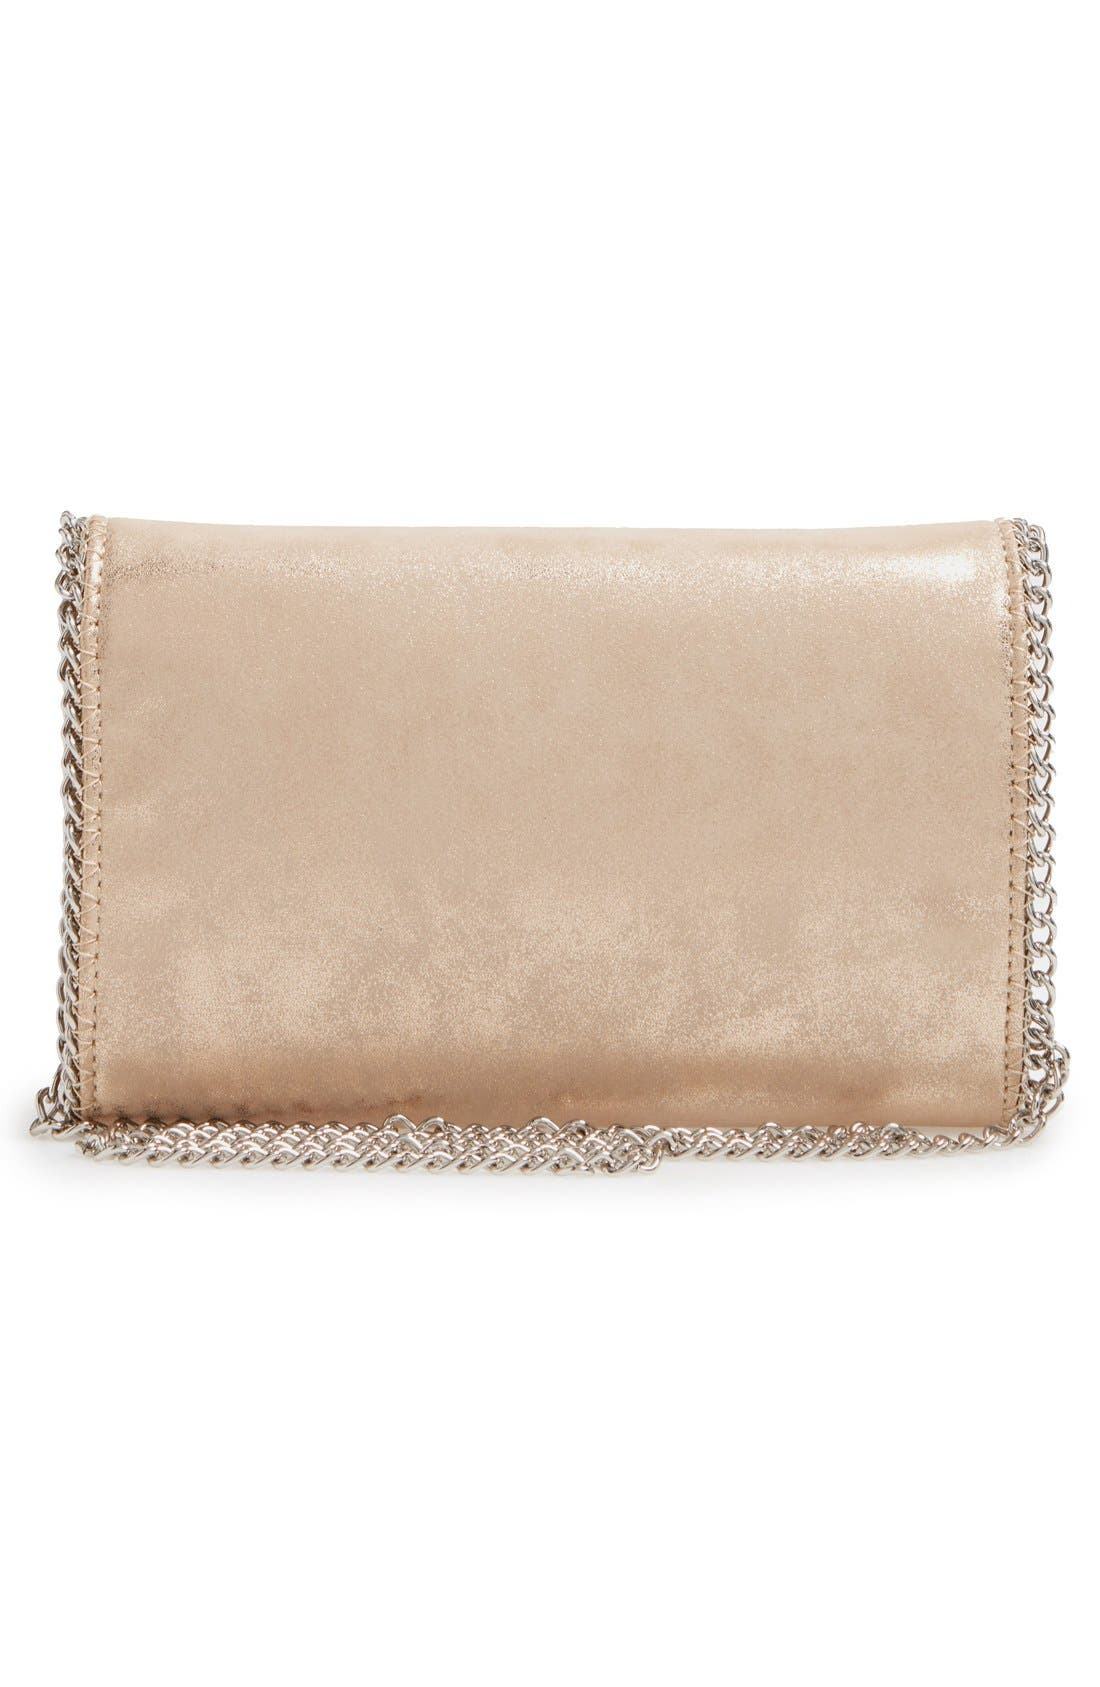 Alternate Image 3  - Chelsea28 Faux Leather Clutch